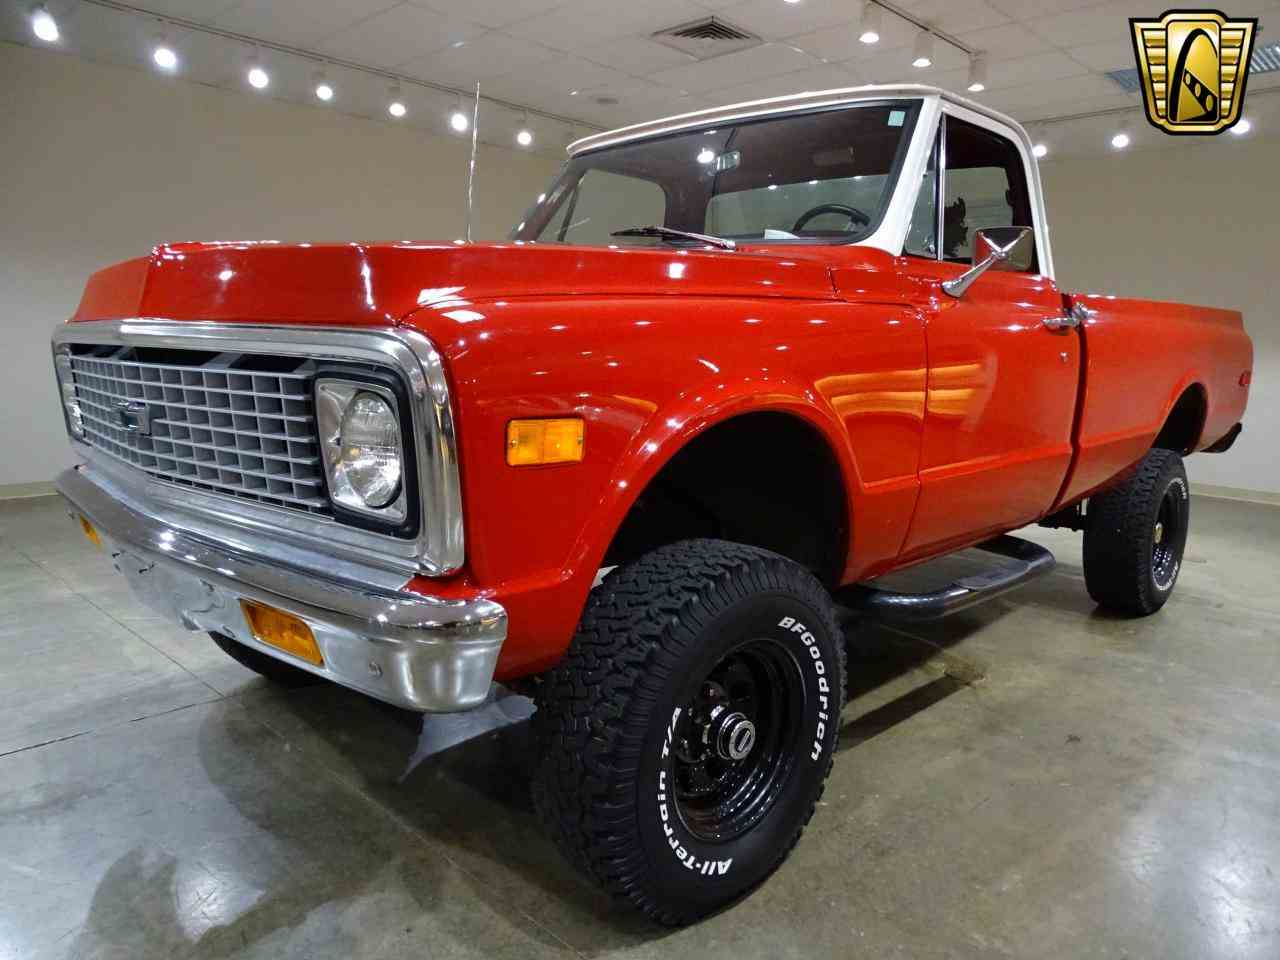 Large Picture of '72 Chevrolet K-10 located in Illinois - $22,995.00 - MFDJ